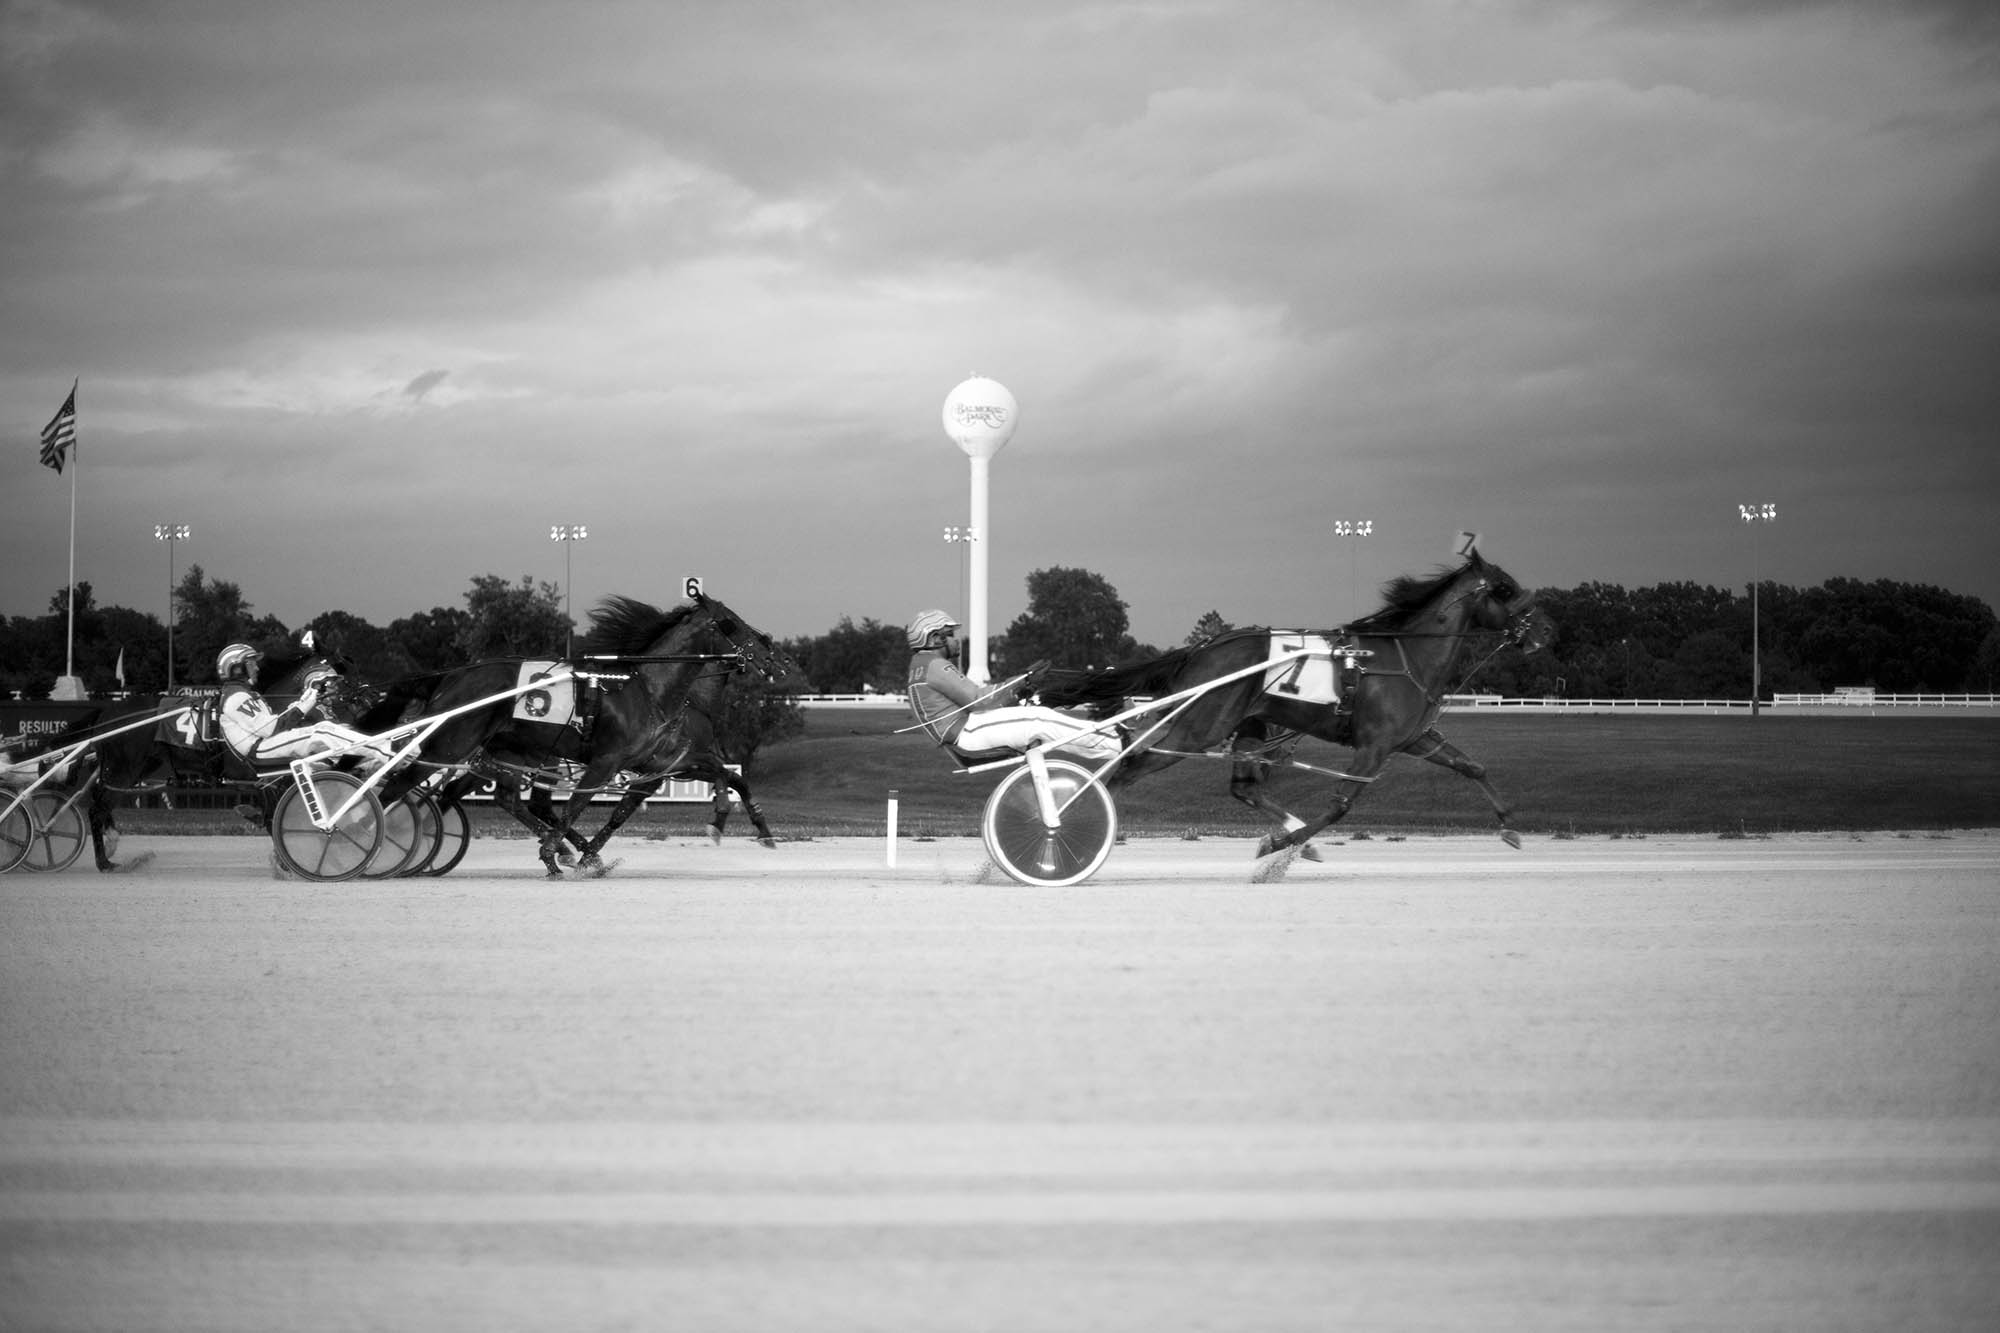 Photography assignment: Stop Motion - Horse racing stopped in action.